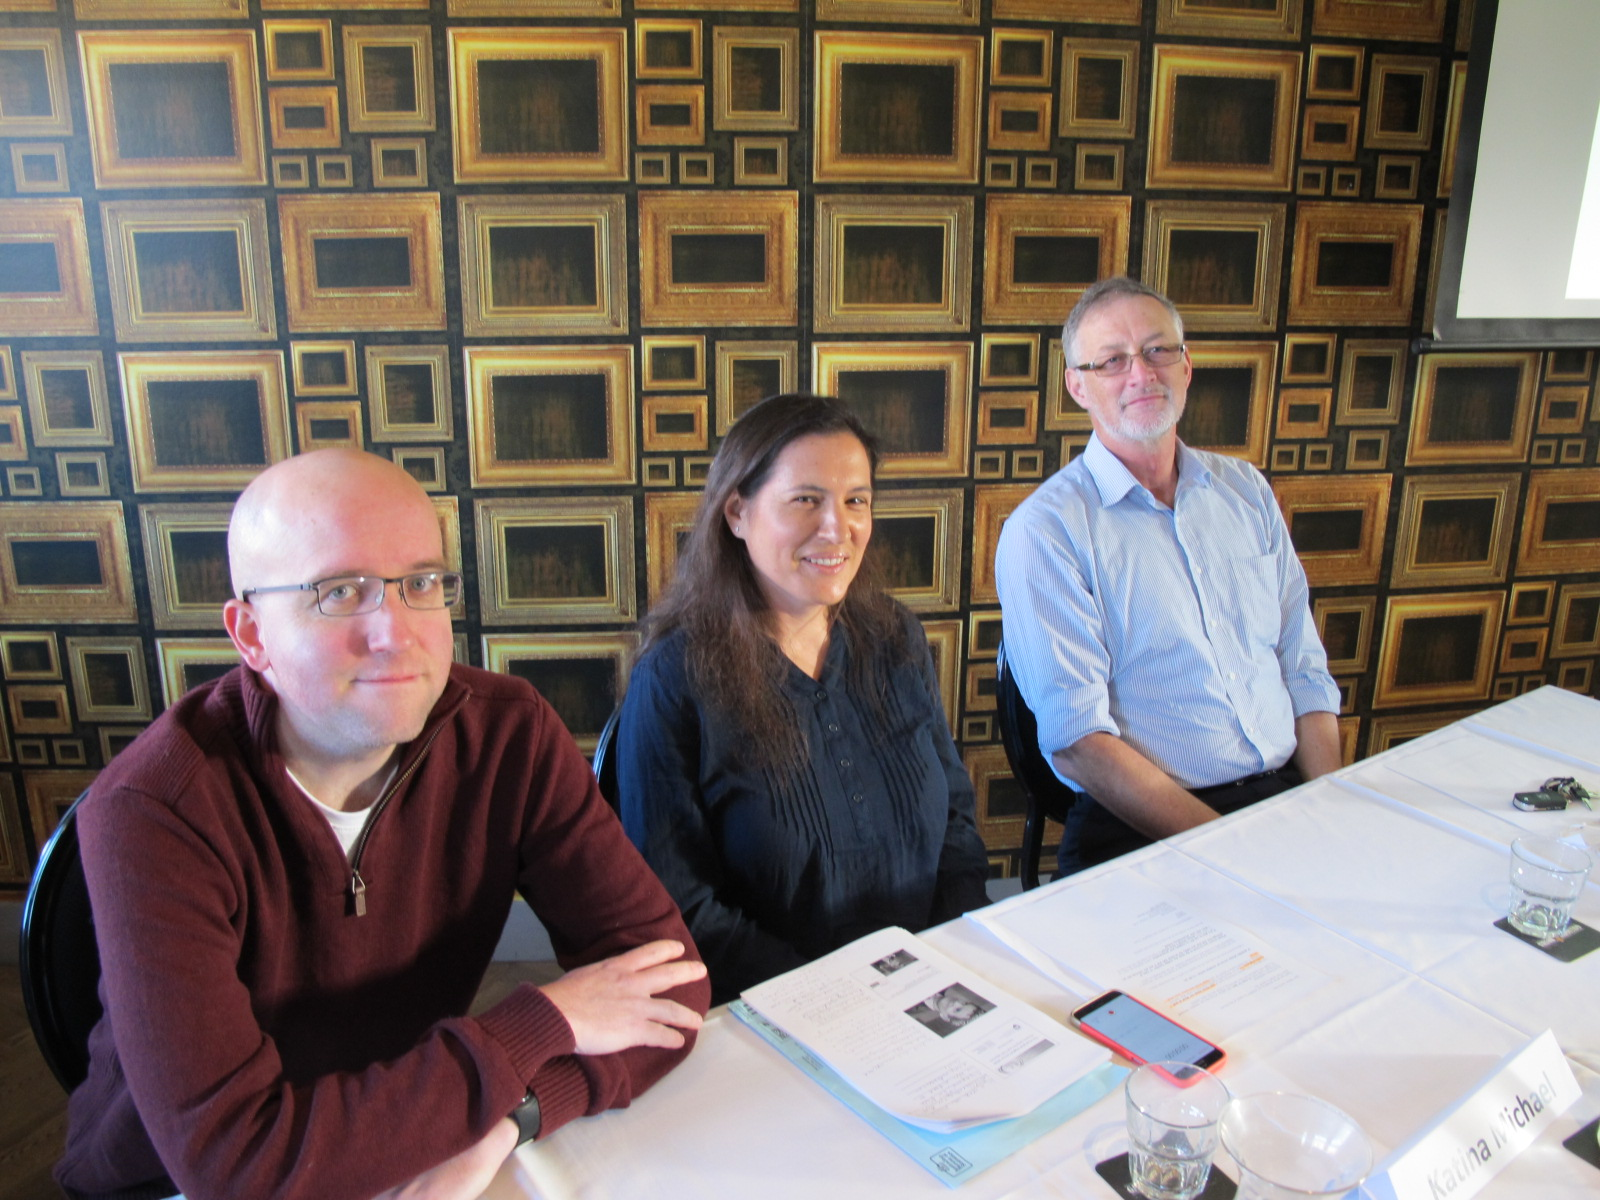 From left to right: Alex Kidwell, Katina Michael, Rob Livingstone.